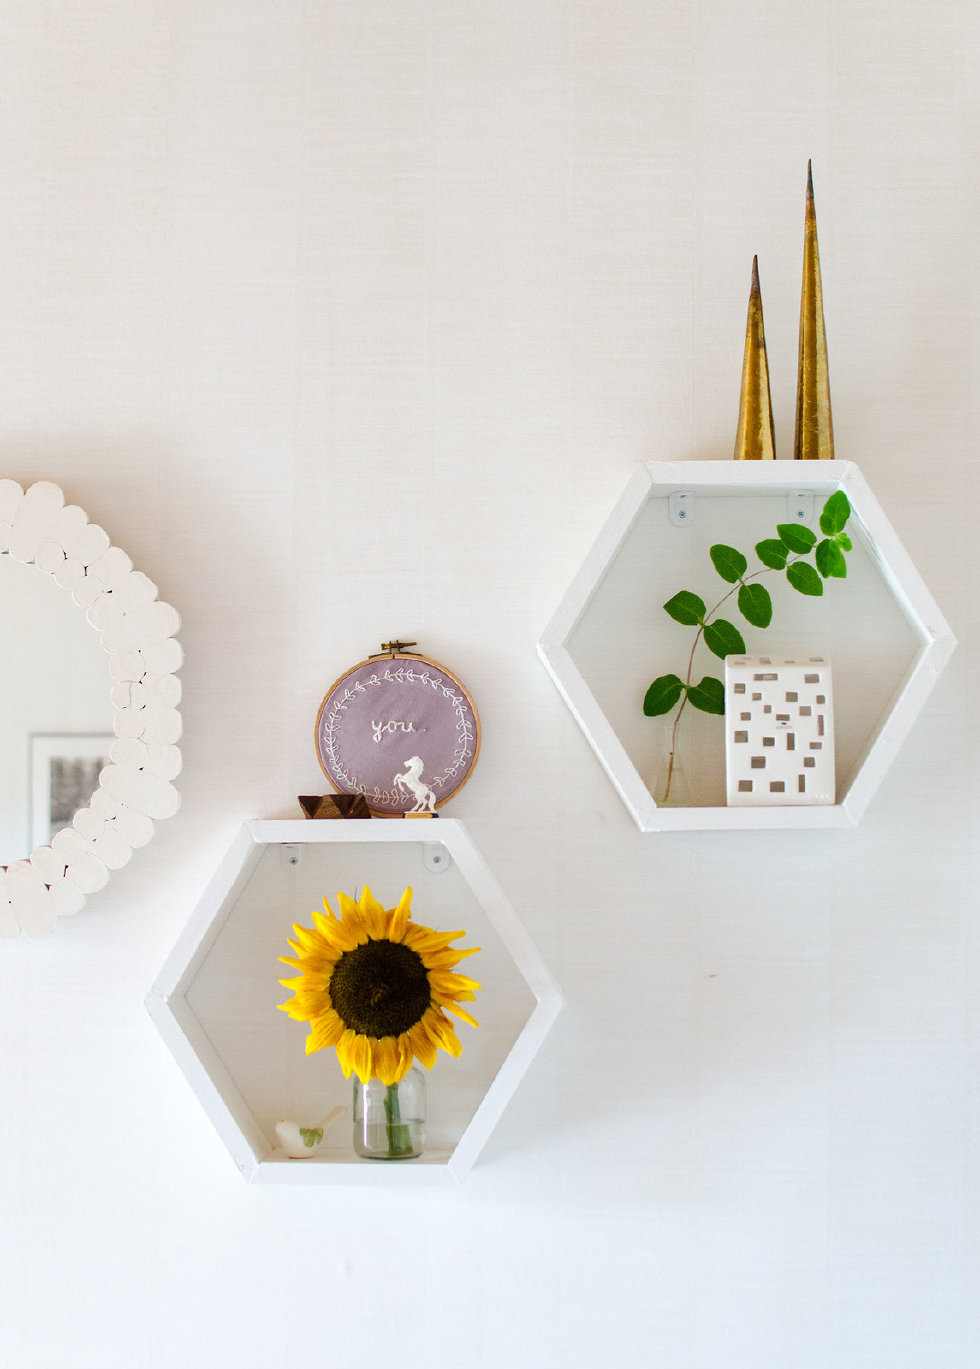 Honeycomb shelves for wall